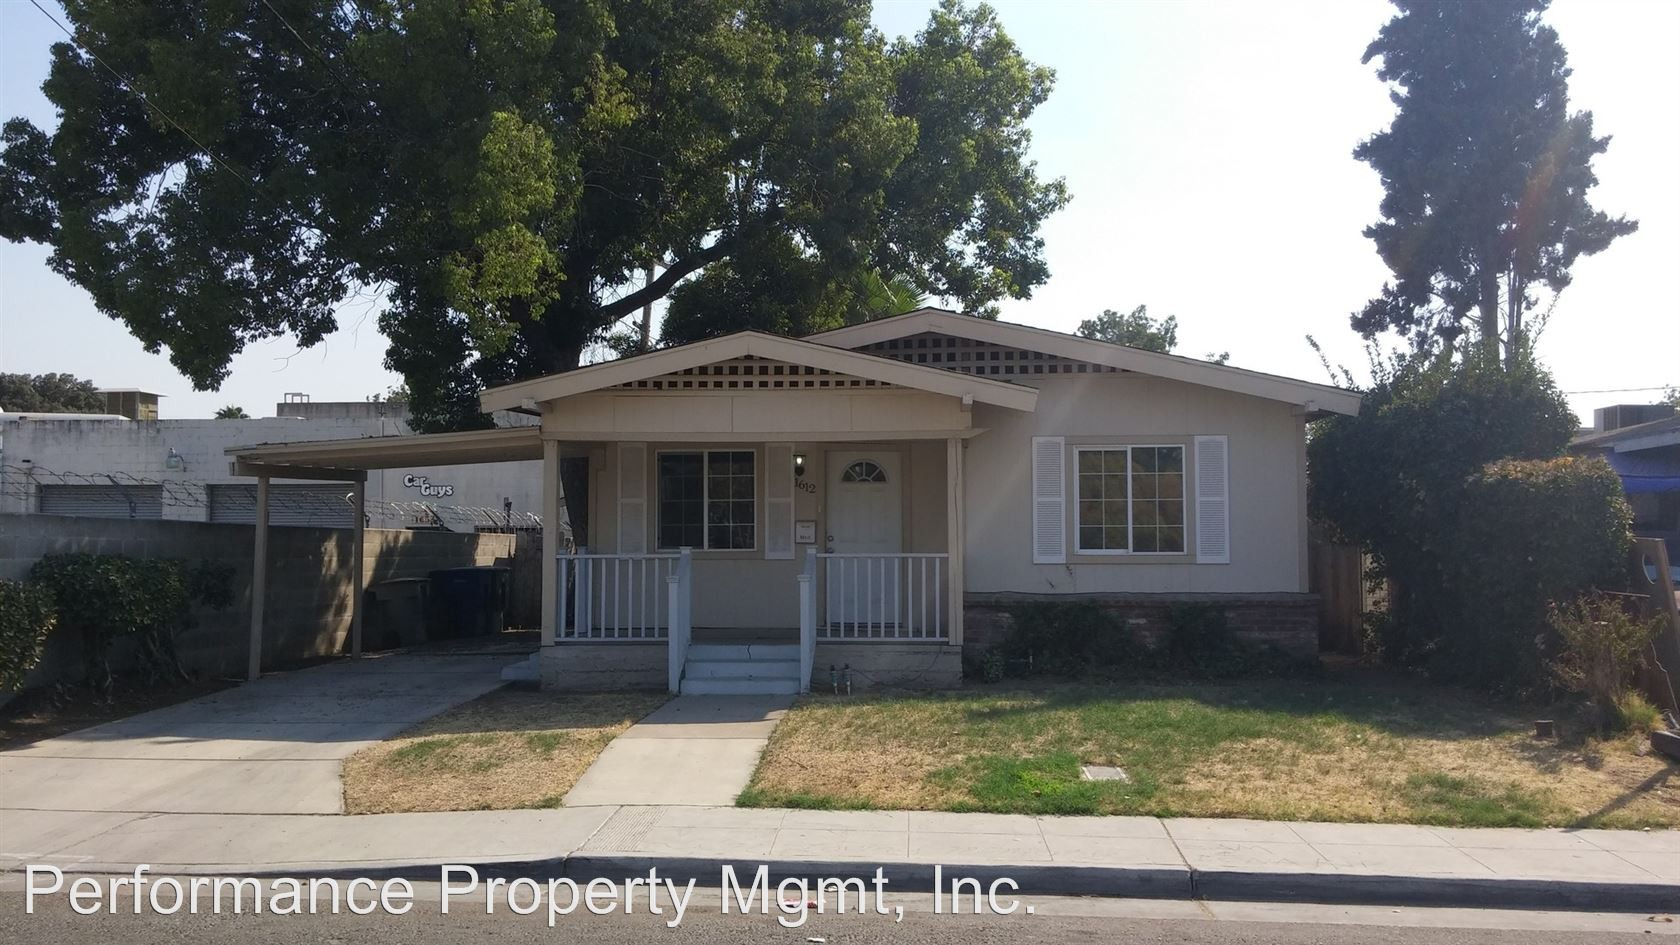 1612 e home ave fresno ca 93728 2 bedroom apartment One bedroom apartments in california